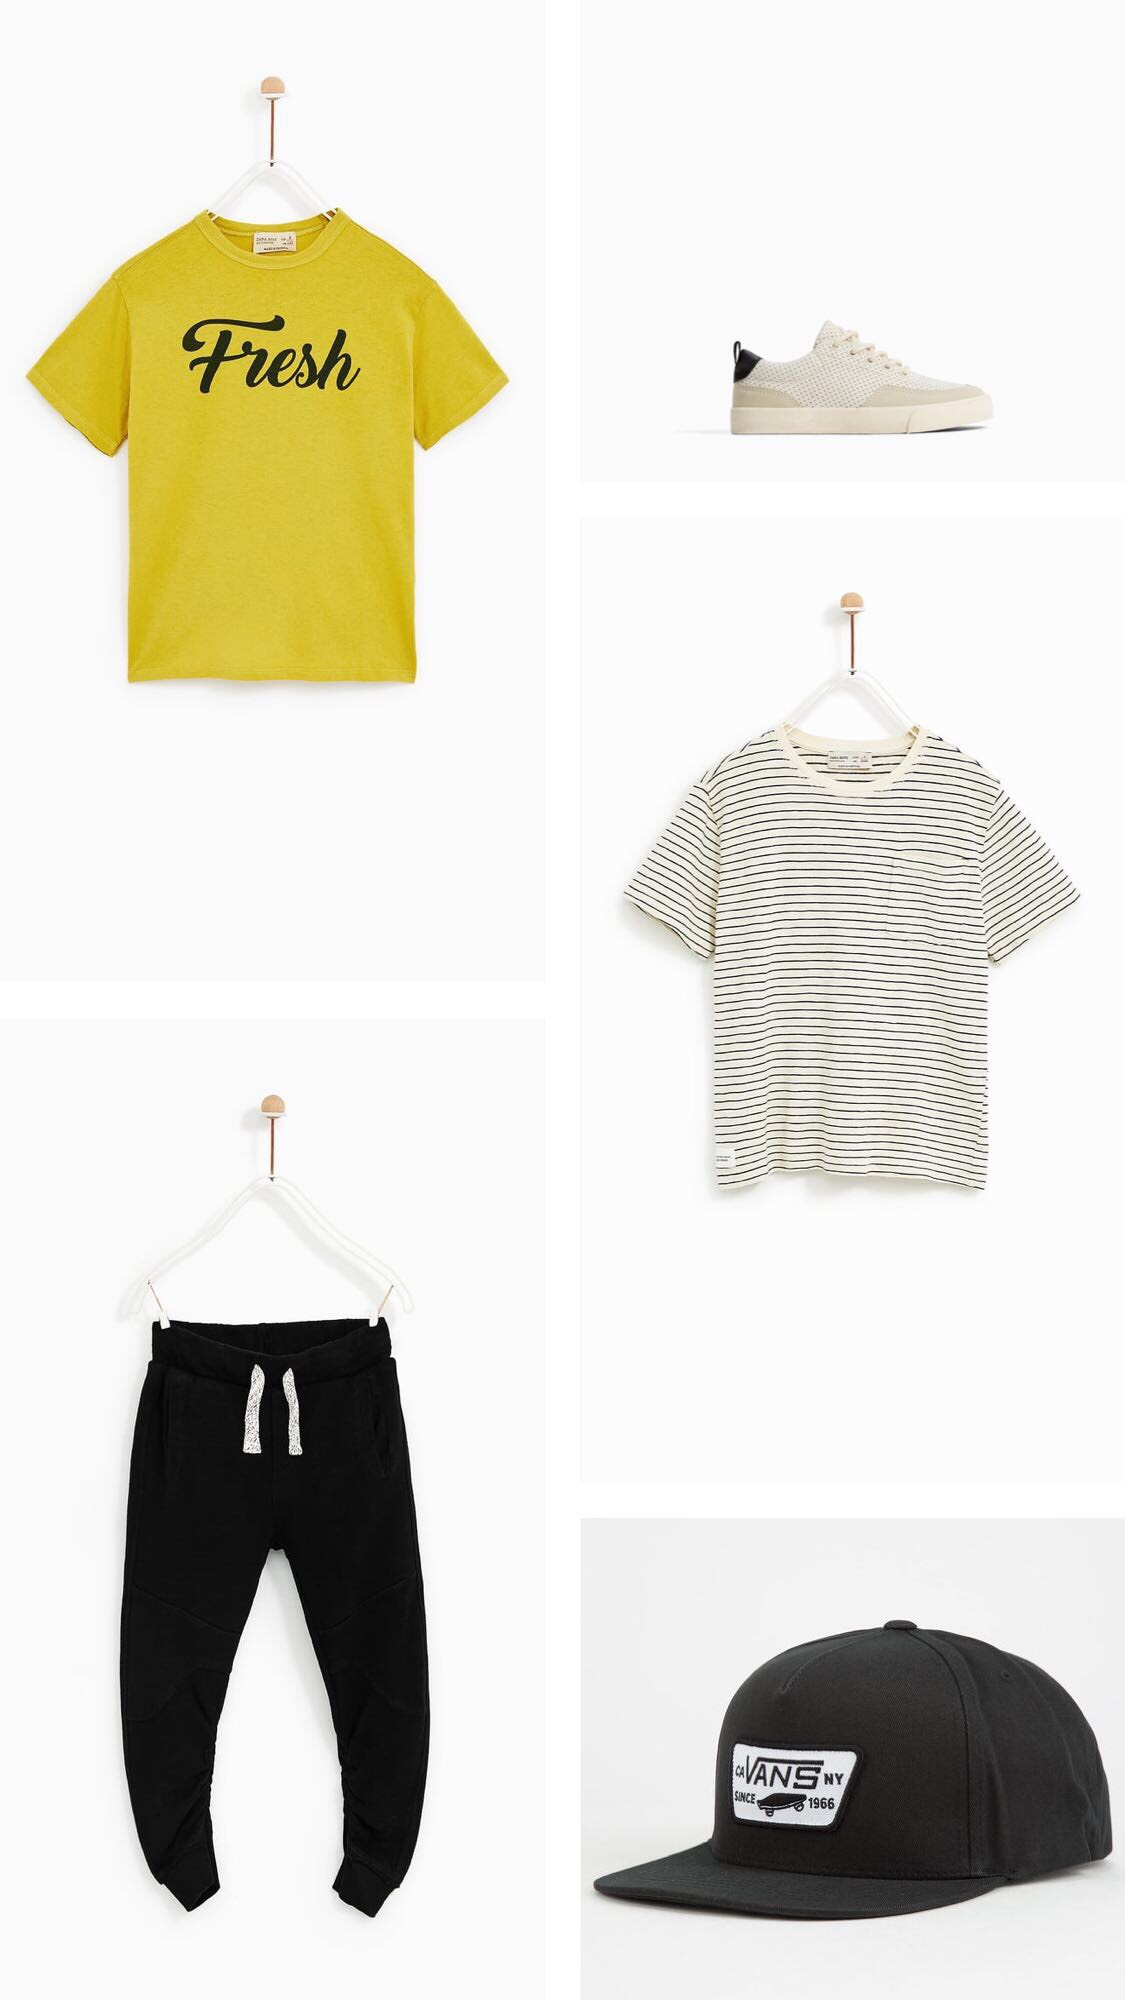 Top Left:  Neon Slogan Shirt   Bottom Left:  Pants with Gathered Hem   Top Right:  Micro-Perforated Sneakers   Mid Right:  Striped T-shirt with Pocket   Bottom Right:  Boys Vans Hat (similar)